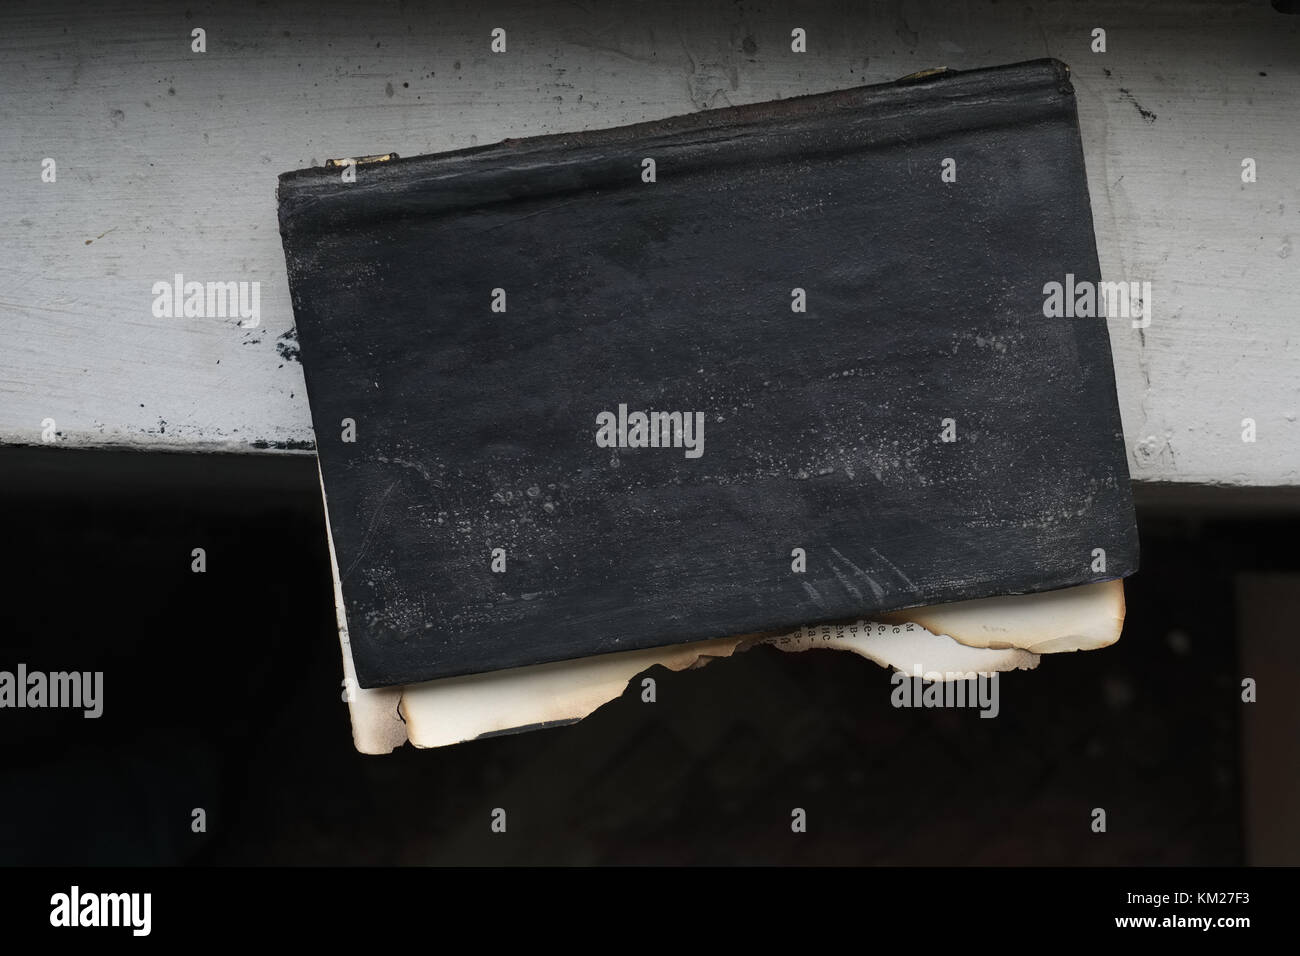 Old burnt book with teared out pages on window sill - Stock Image